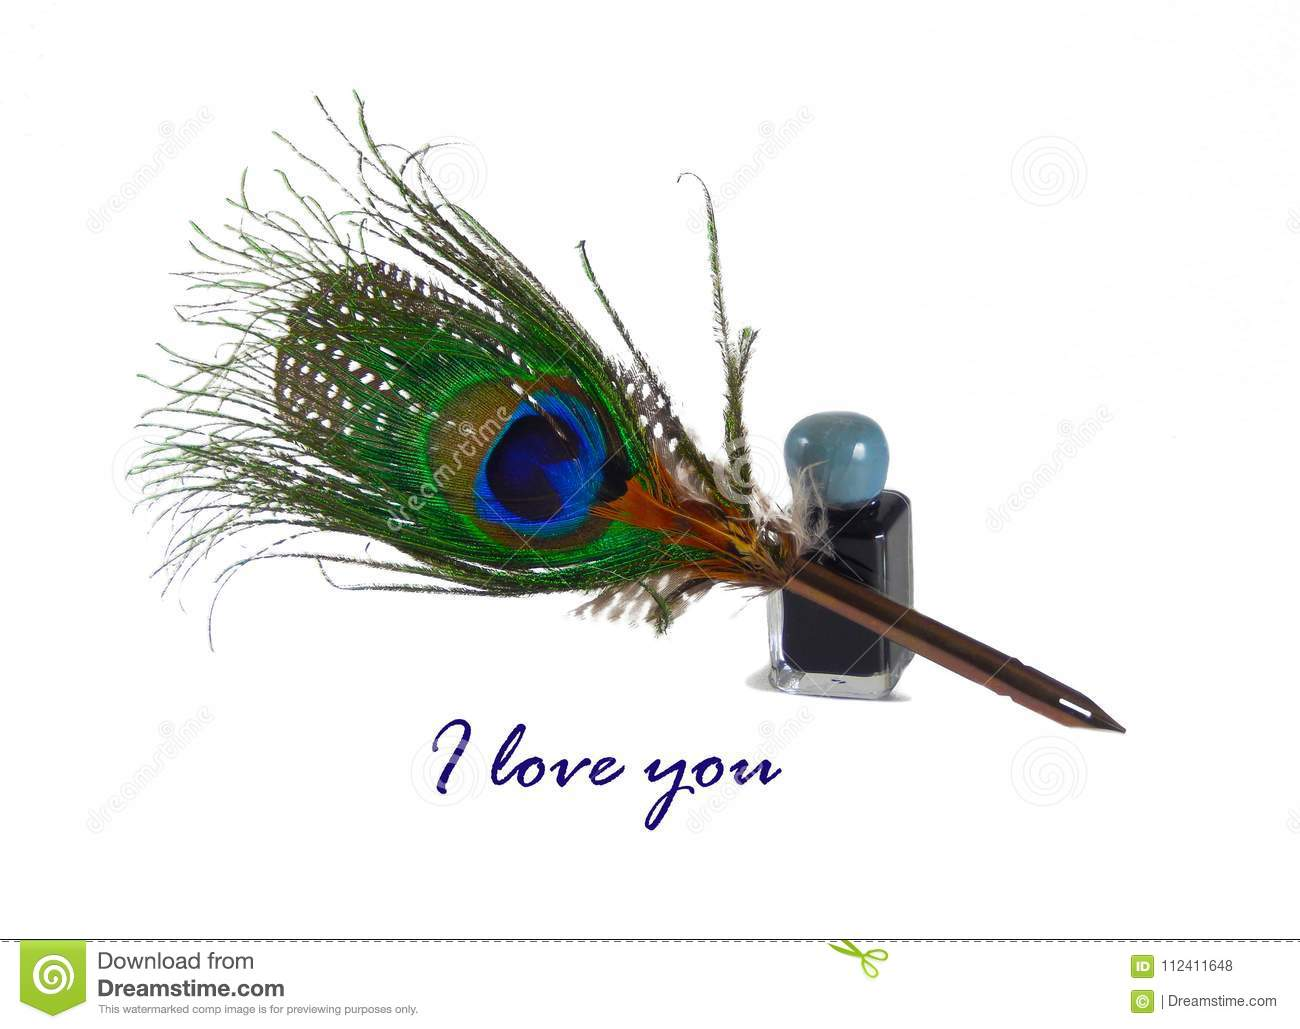 The text `I love you`